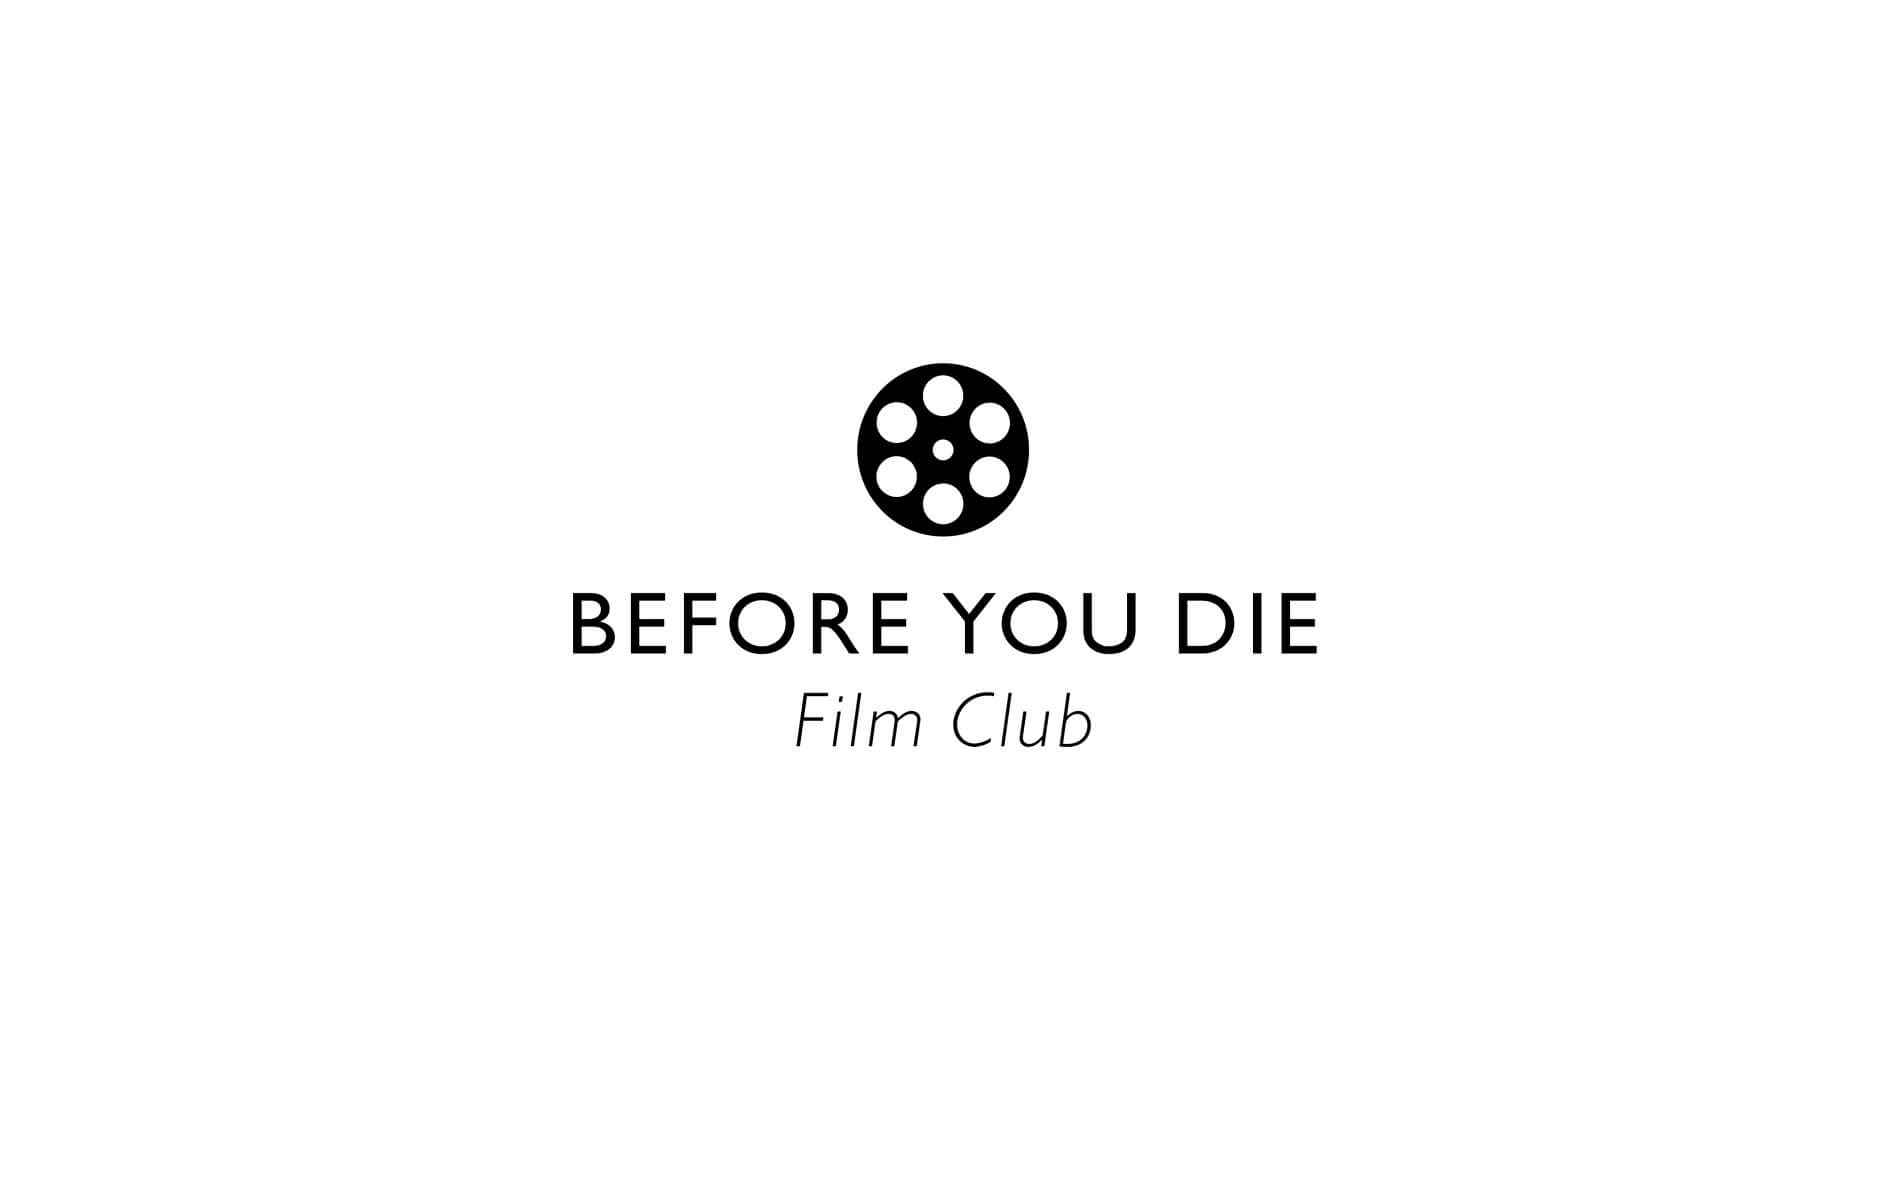 Before You Die Poster